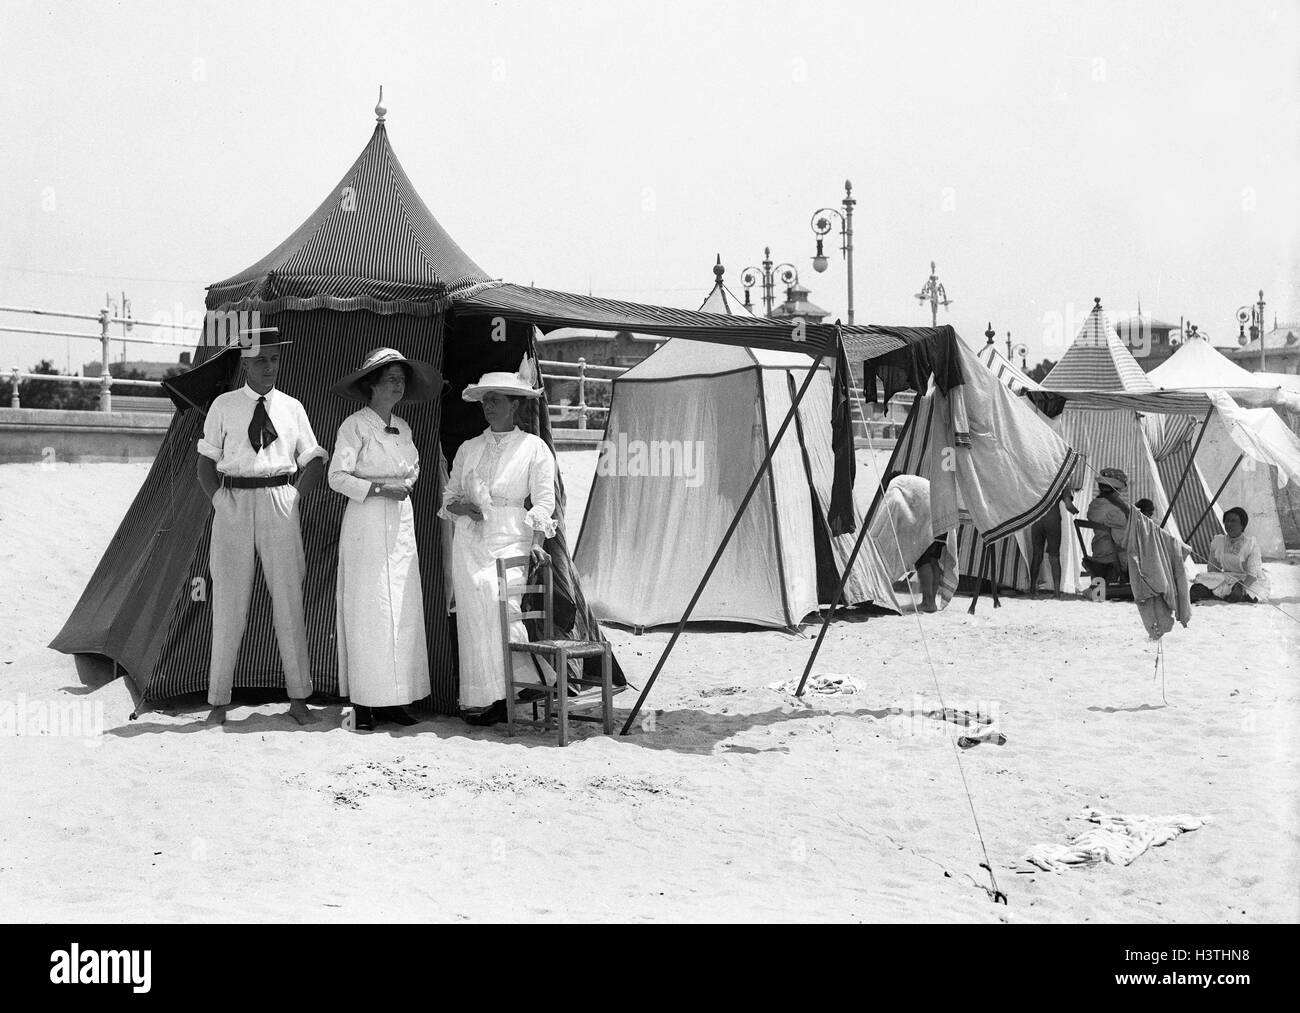 Fashionable people with beach tents at Deauville seaside resort In Normandy France 1912 - Stock Image